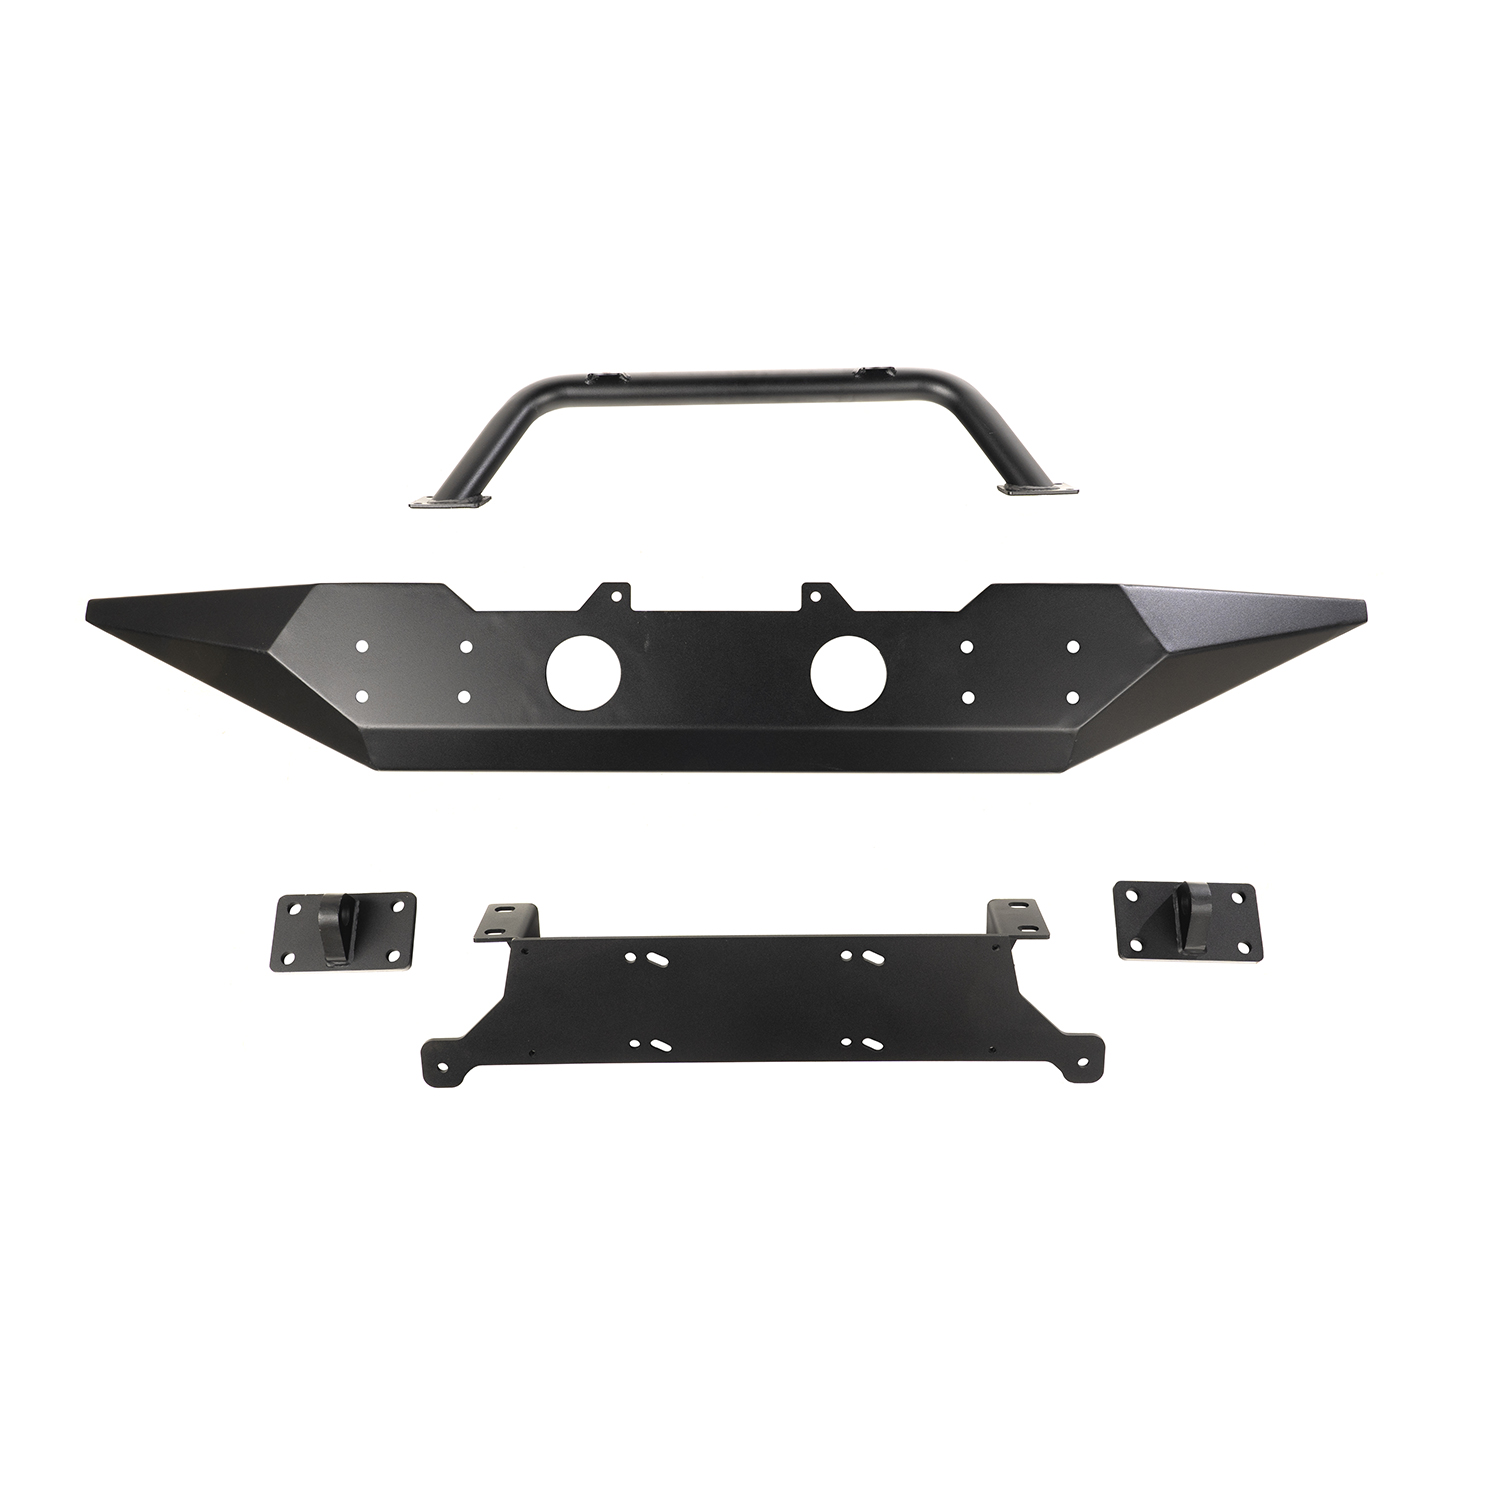 Spartan Front Bumper SE With Overrider 07-18 Jeep Wrangler JK Get FREE D-Rings (11235.18) w/ Isolators (11235.30) with Spartan front bumper